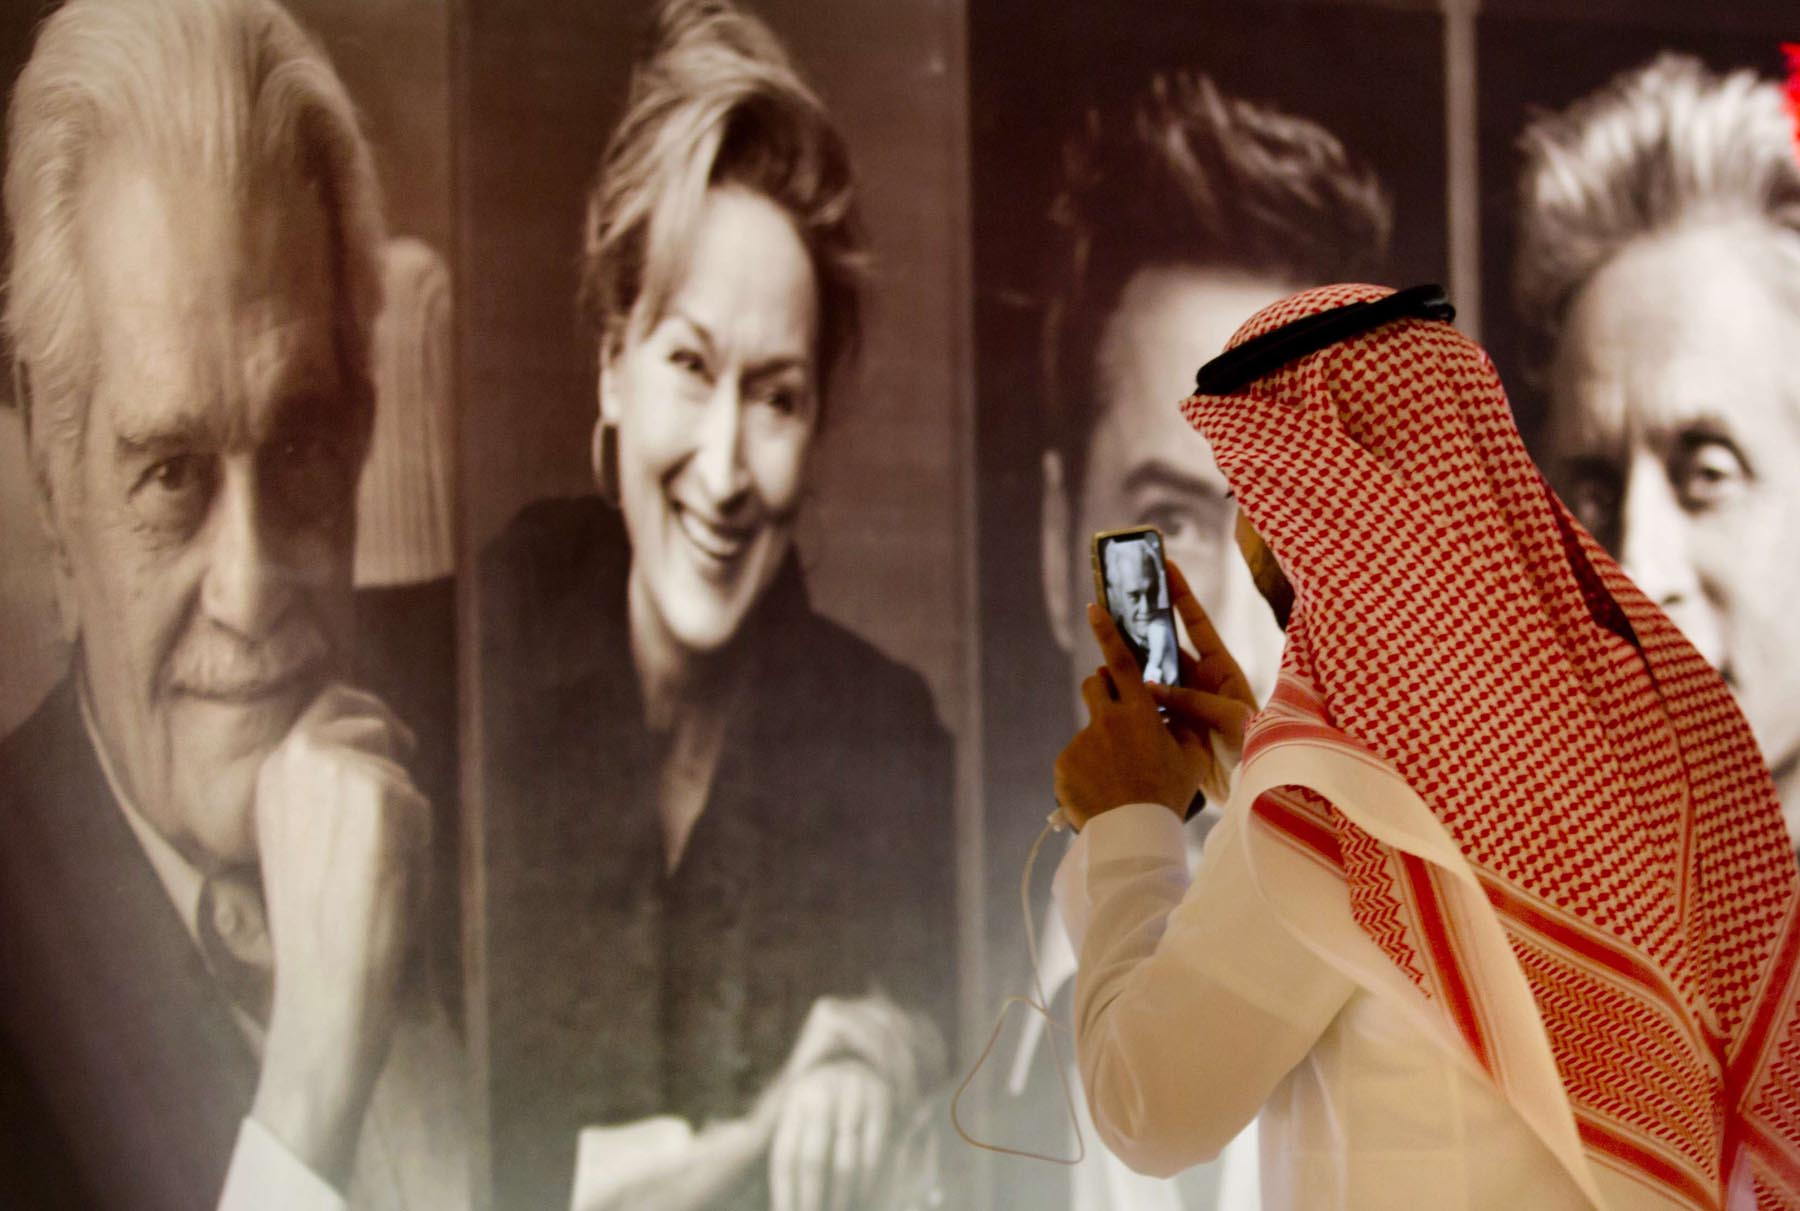 A visitor takes pictures of posters of Hollywood movie stars during a screening at the King Abdullah Financial District Theatre in Riyadh. (AP)